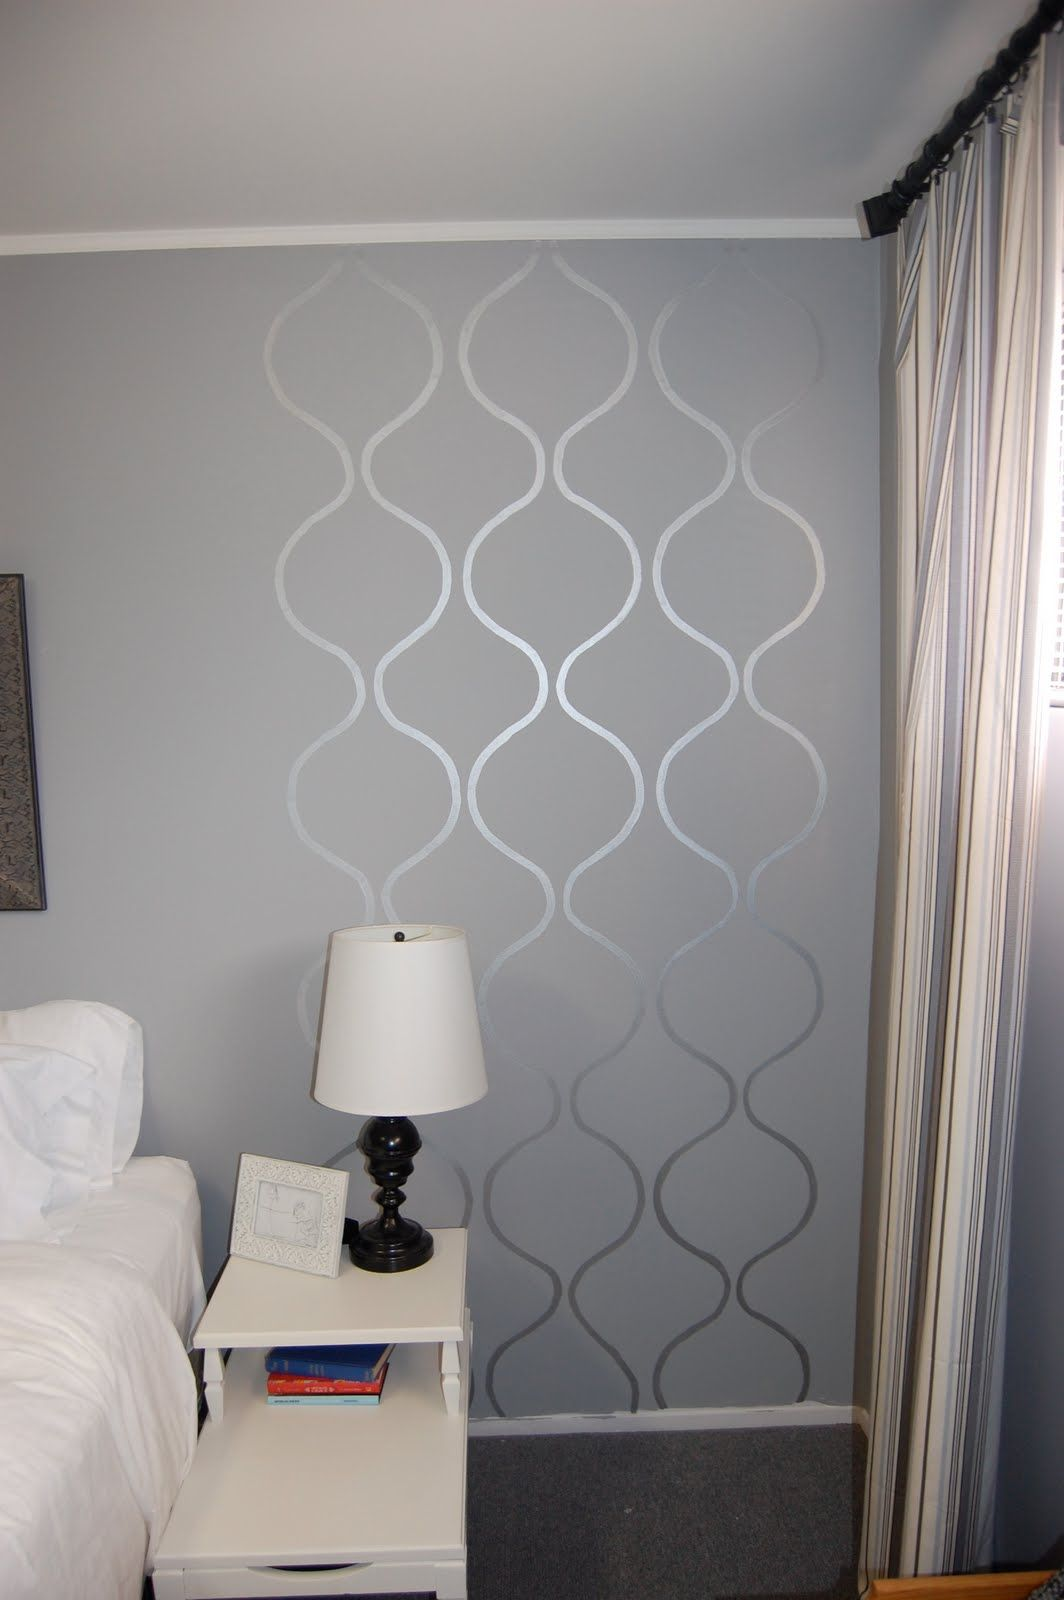 2 50 Silver Craft Paint Stencil Stencil A Small Area I Can Do That Bathroom Bedroom Hall